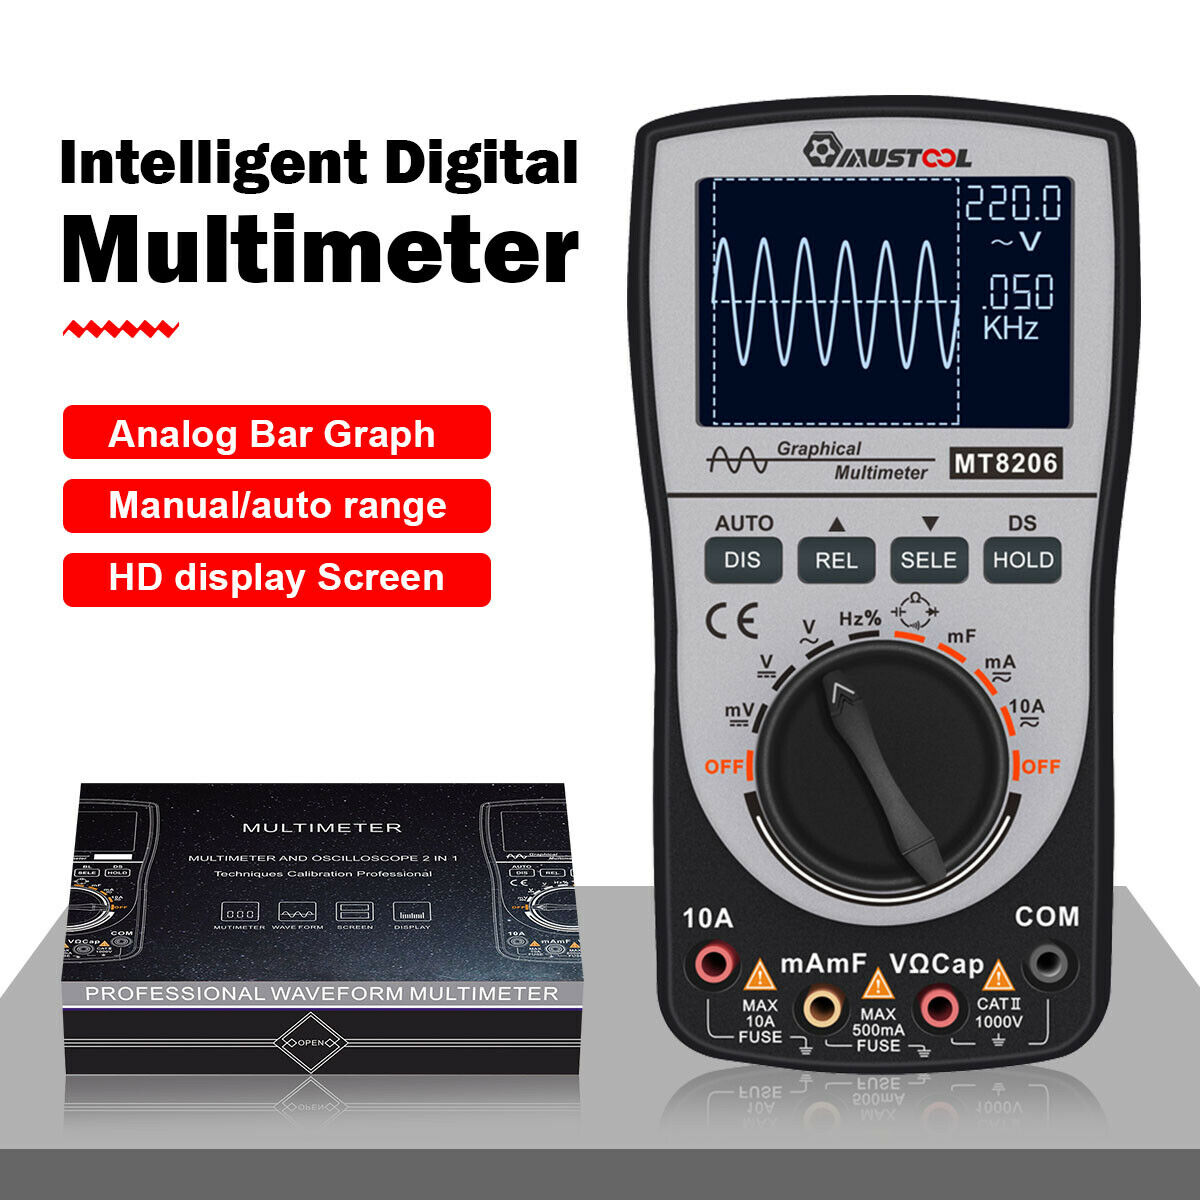 MUSTOOL MT8206 2 in 1 Intelligent Digital Oscilloscope Featured Image